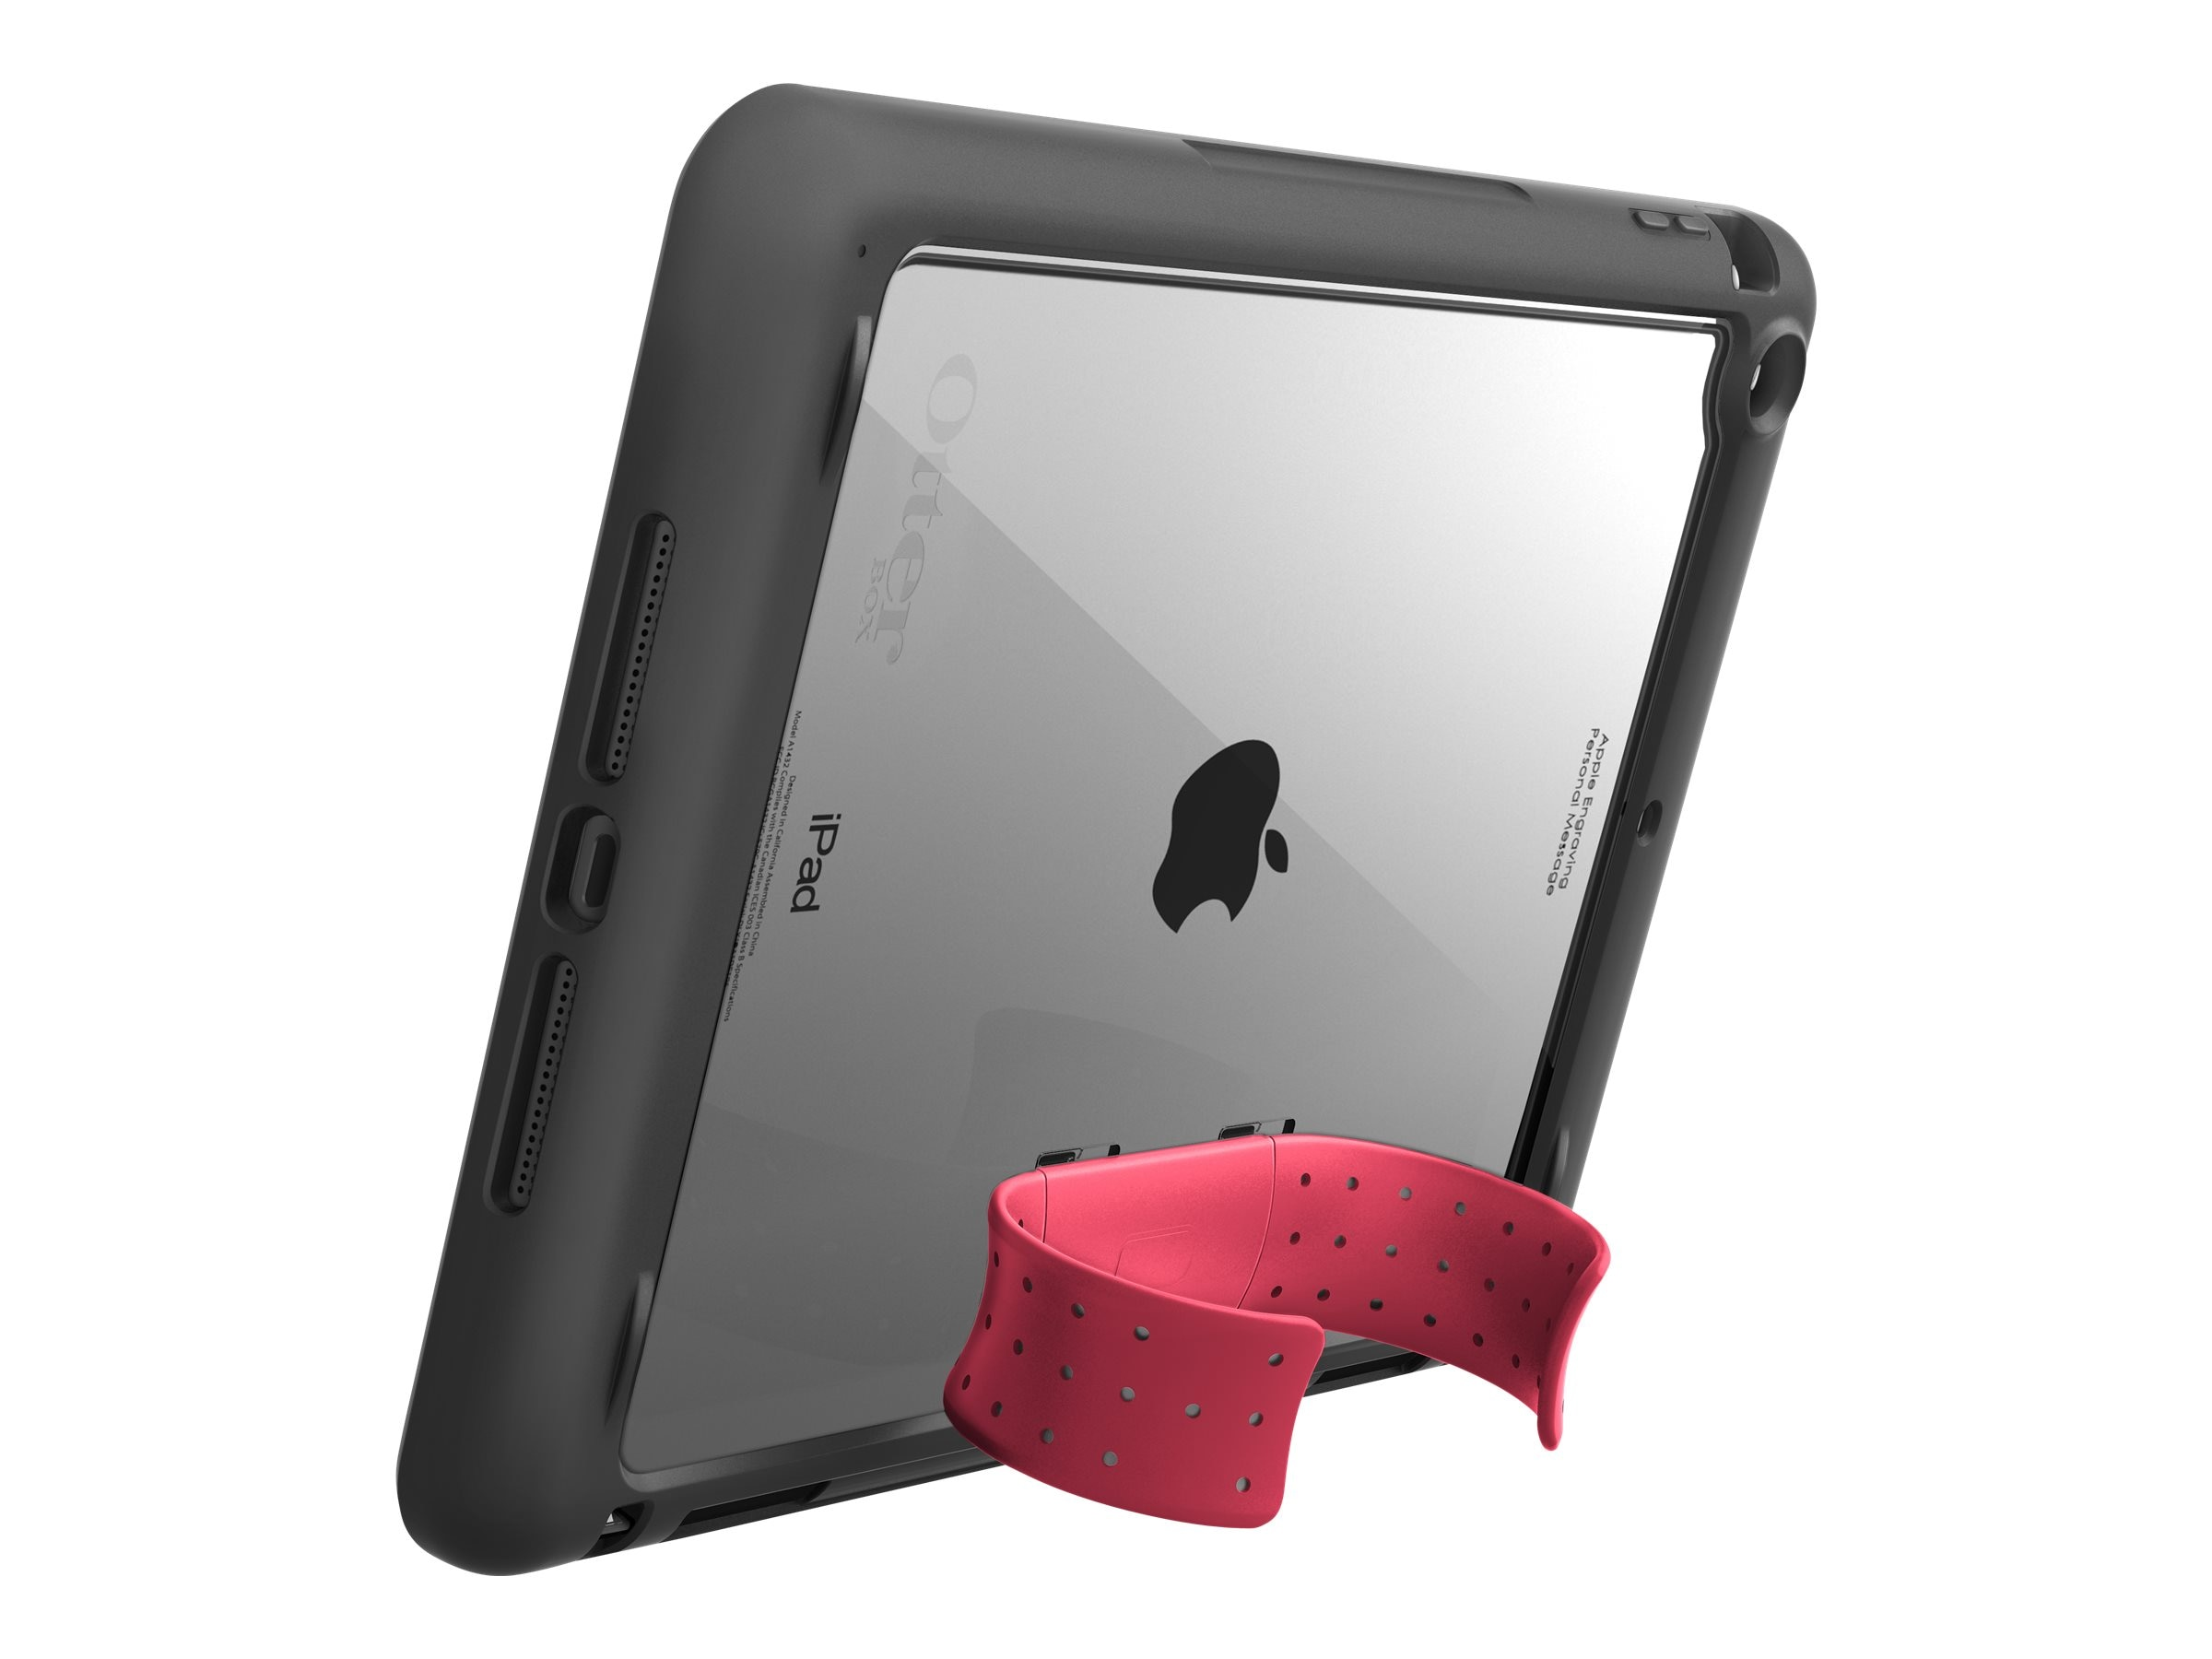 OtterBox Unlimited Stand for iPad Air, Blaze Pink, 78-41172, 18661093, Carrying Cases - Tablets & eReaders